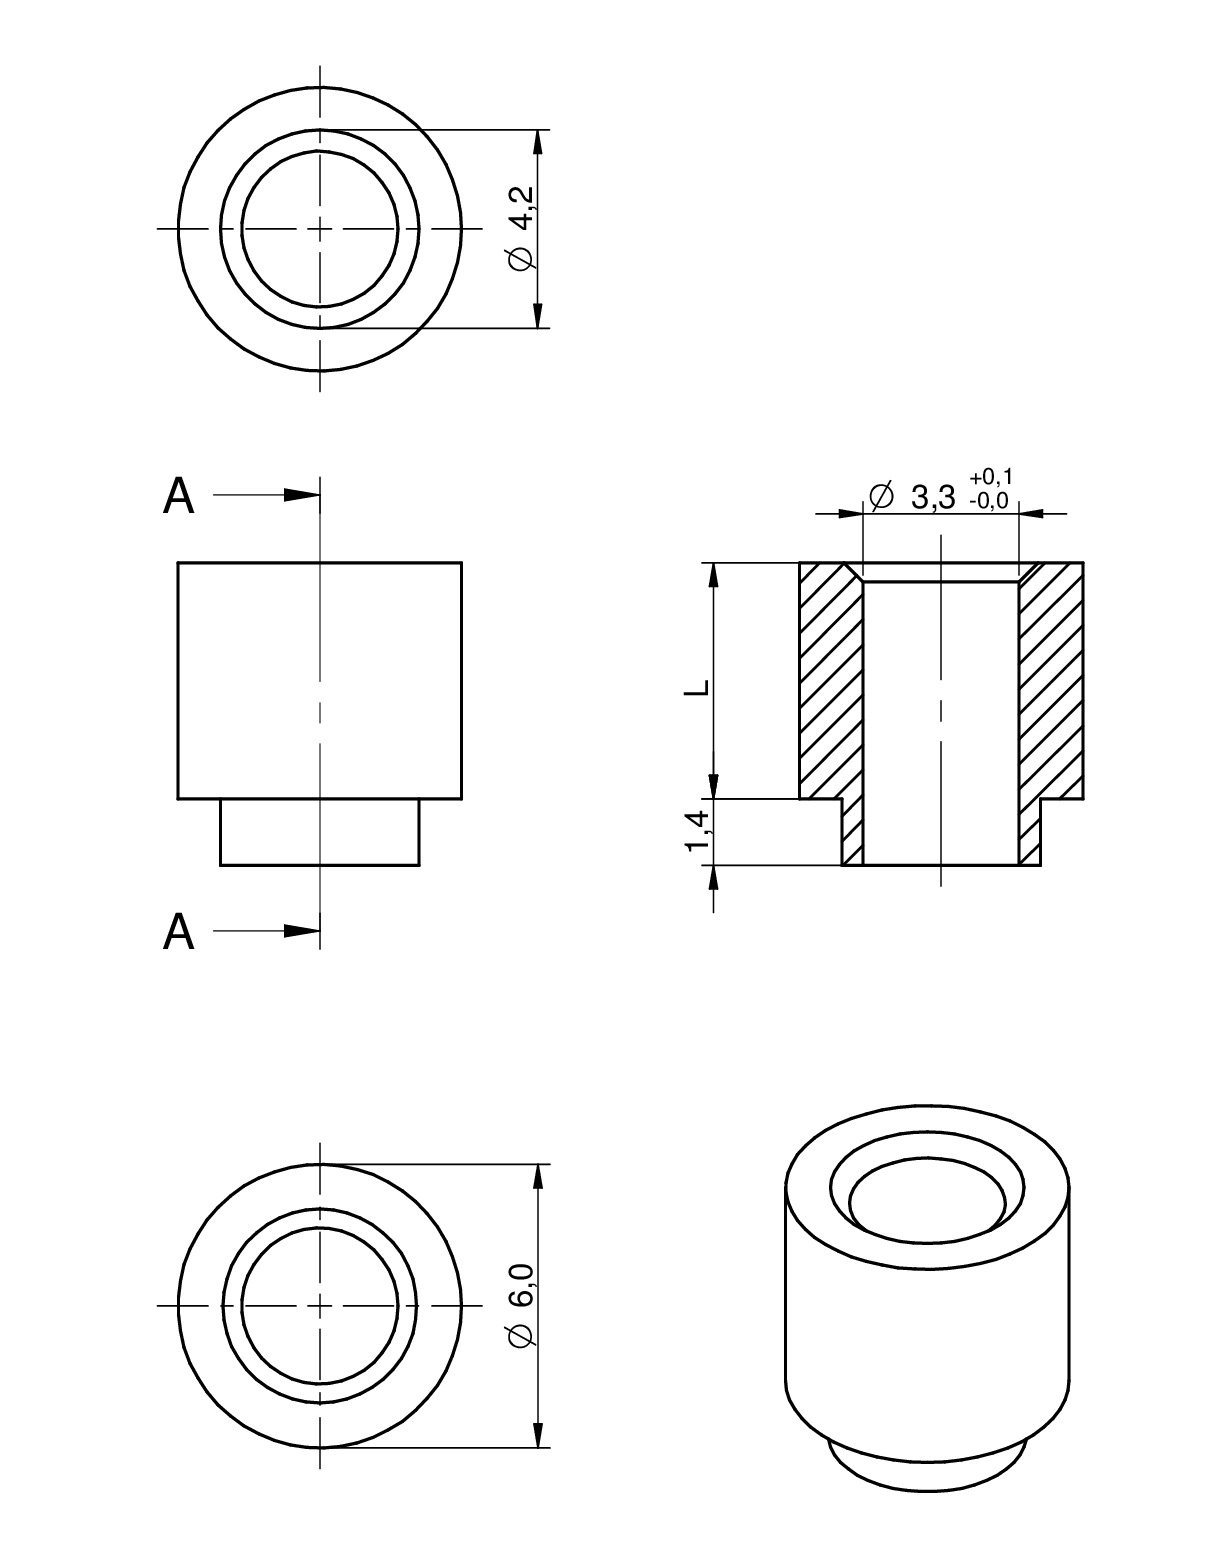 WA-SMST SMT Steel Spacer Ø 3.3 Internal non stop Dimensions